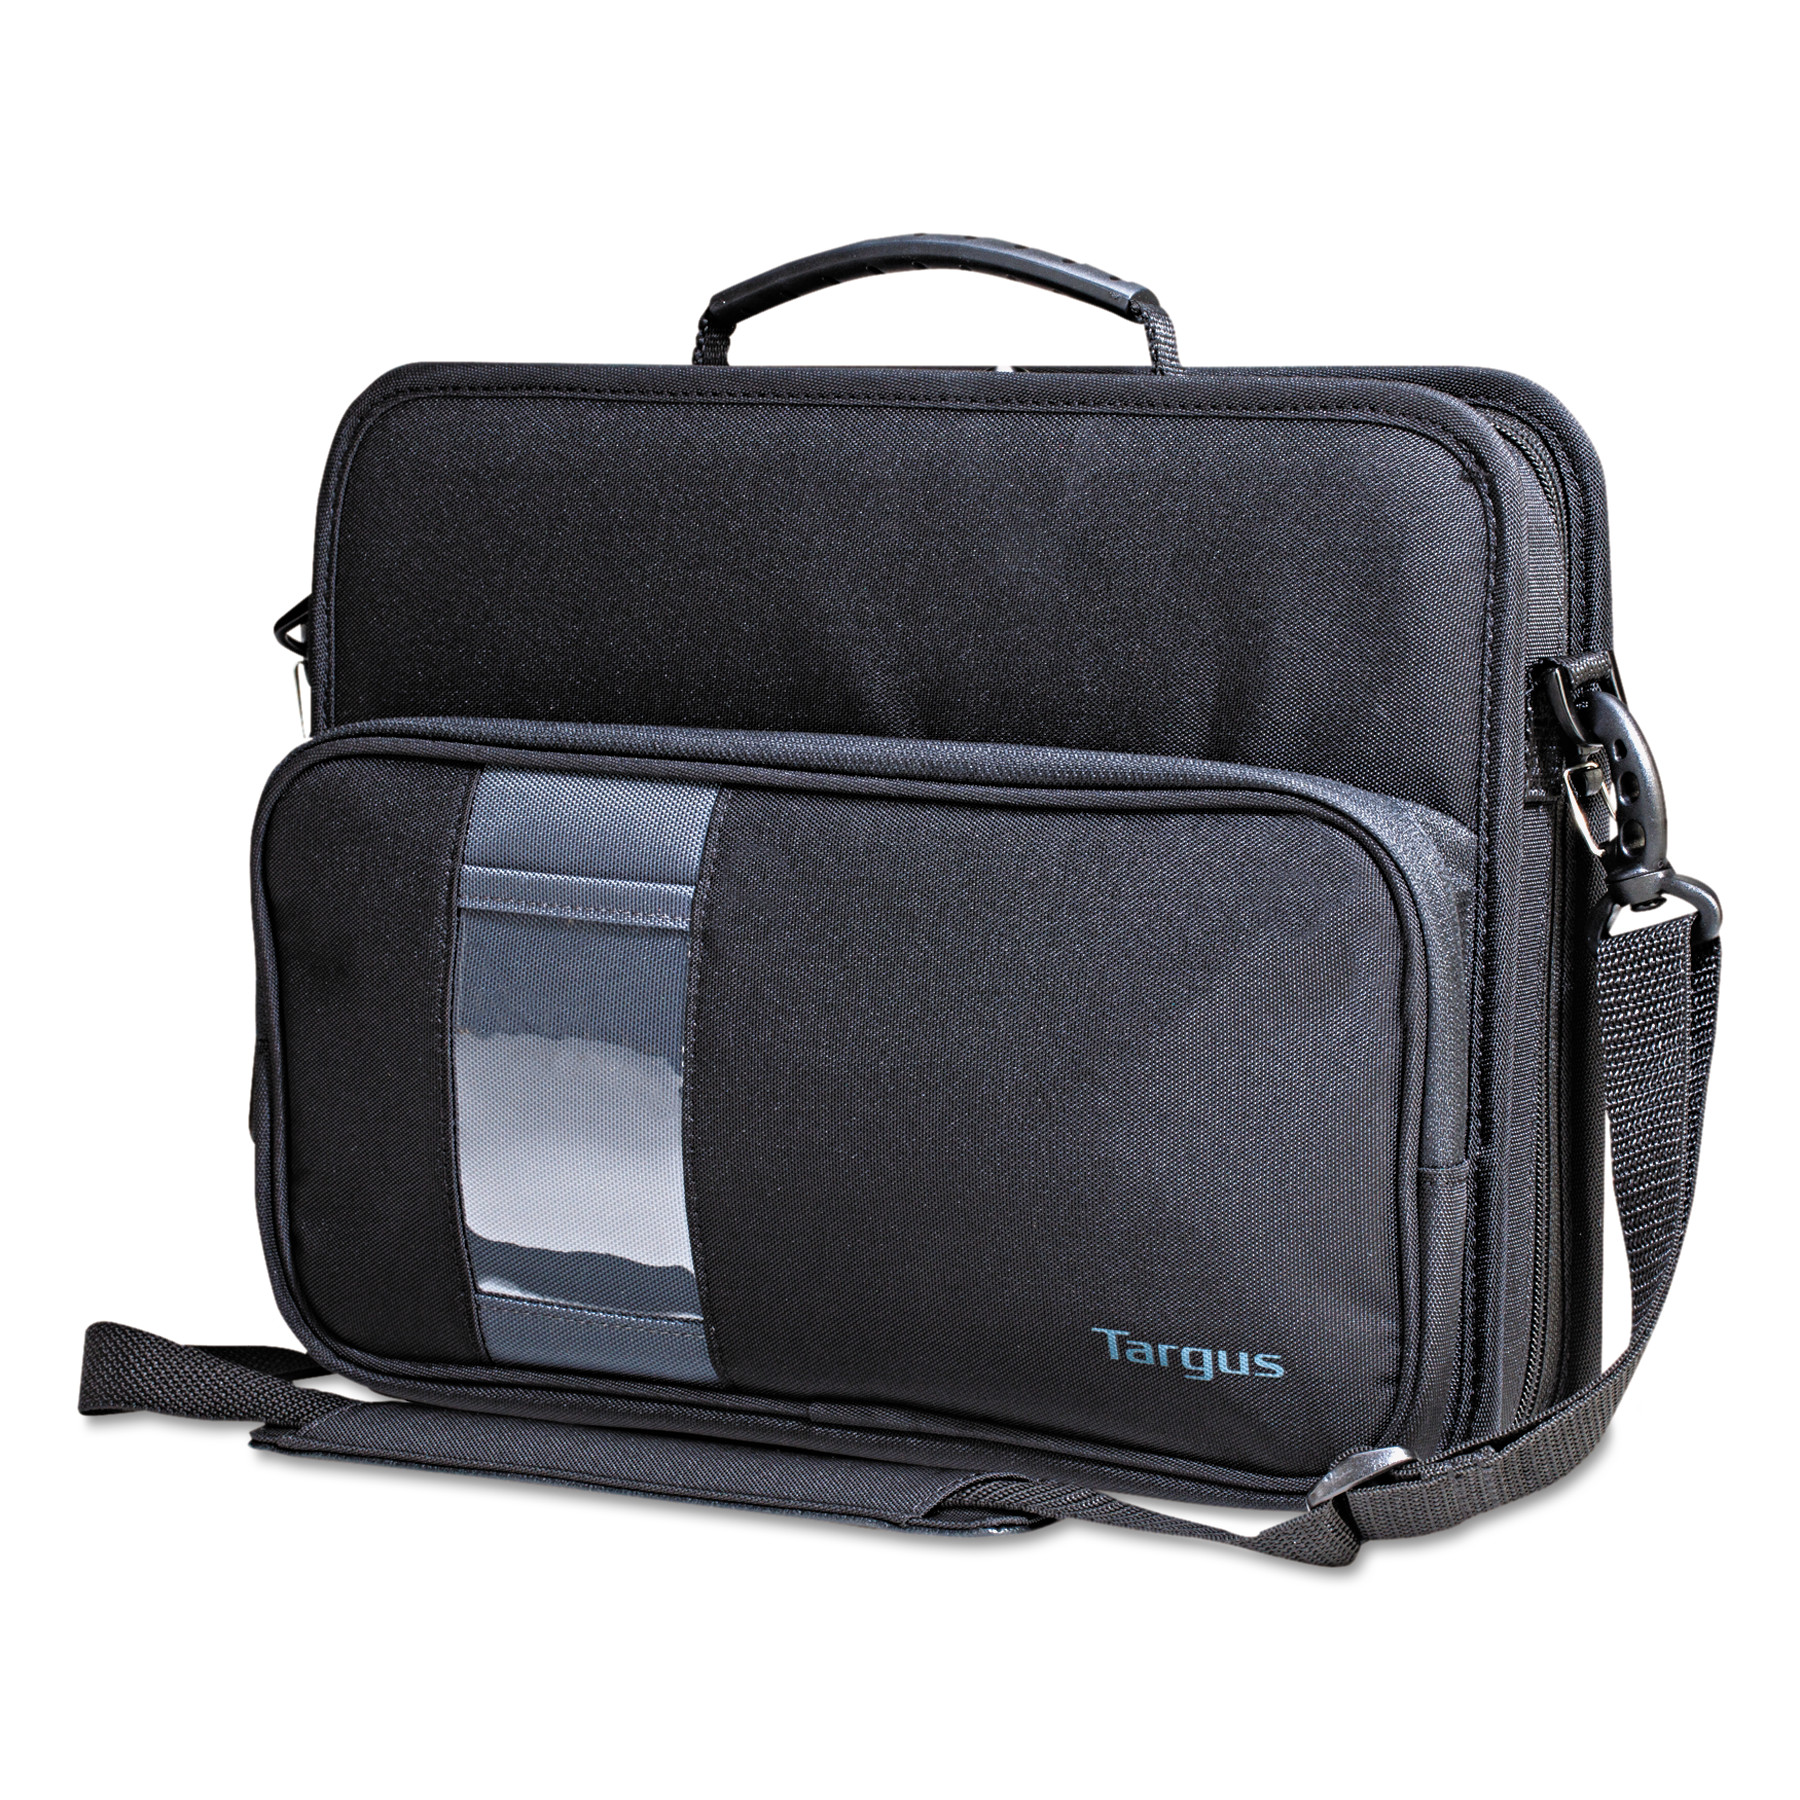 "Targus Work-in Case for Chromebook, 11.6"", 2 1/2 x 12 5/8 x 10 1/2, Black"